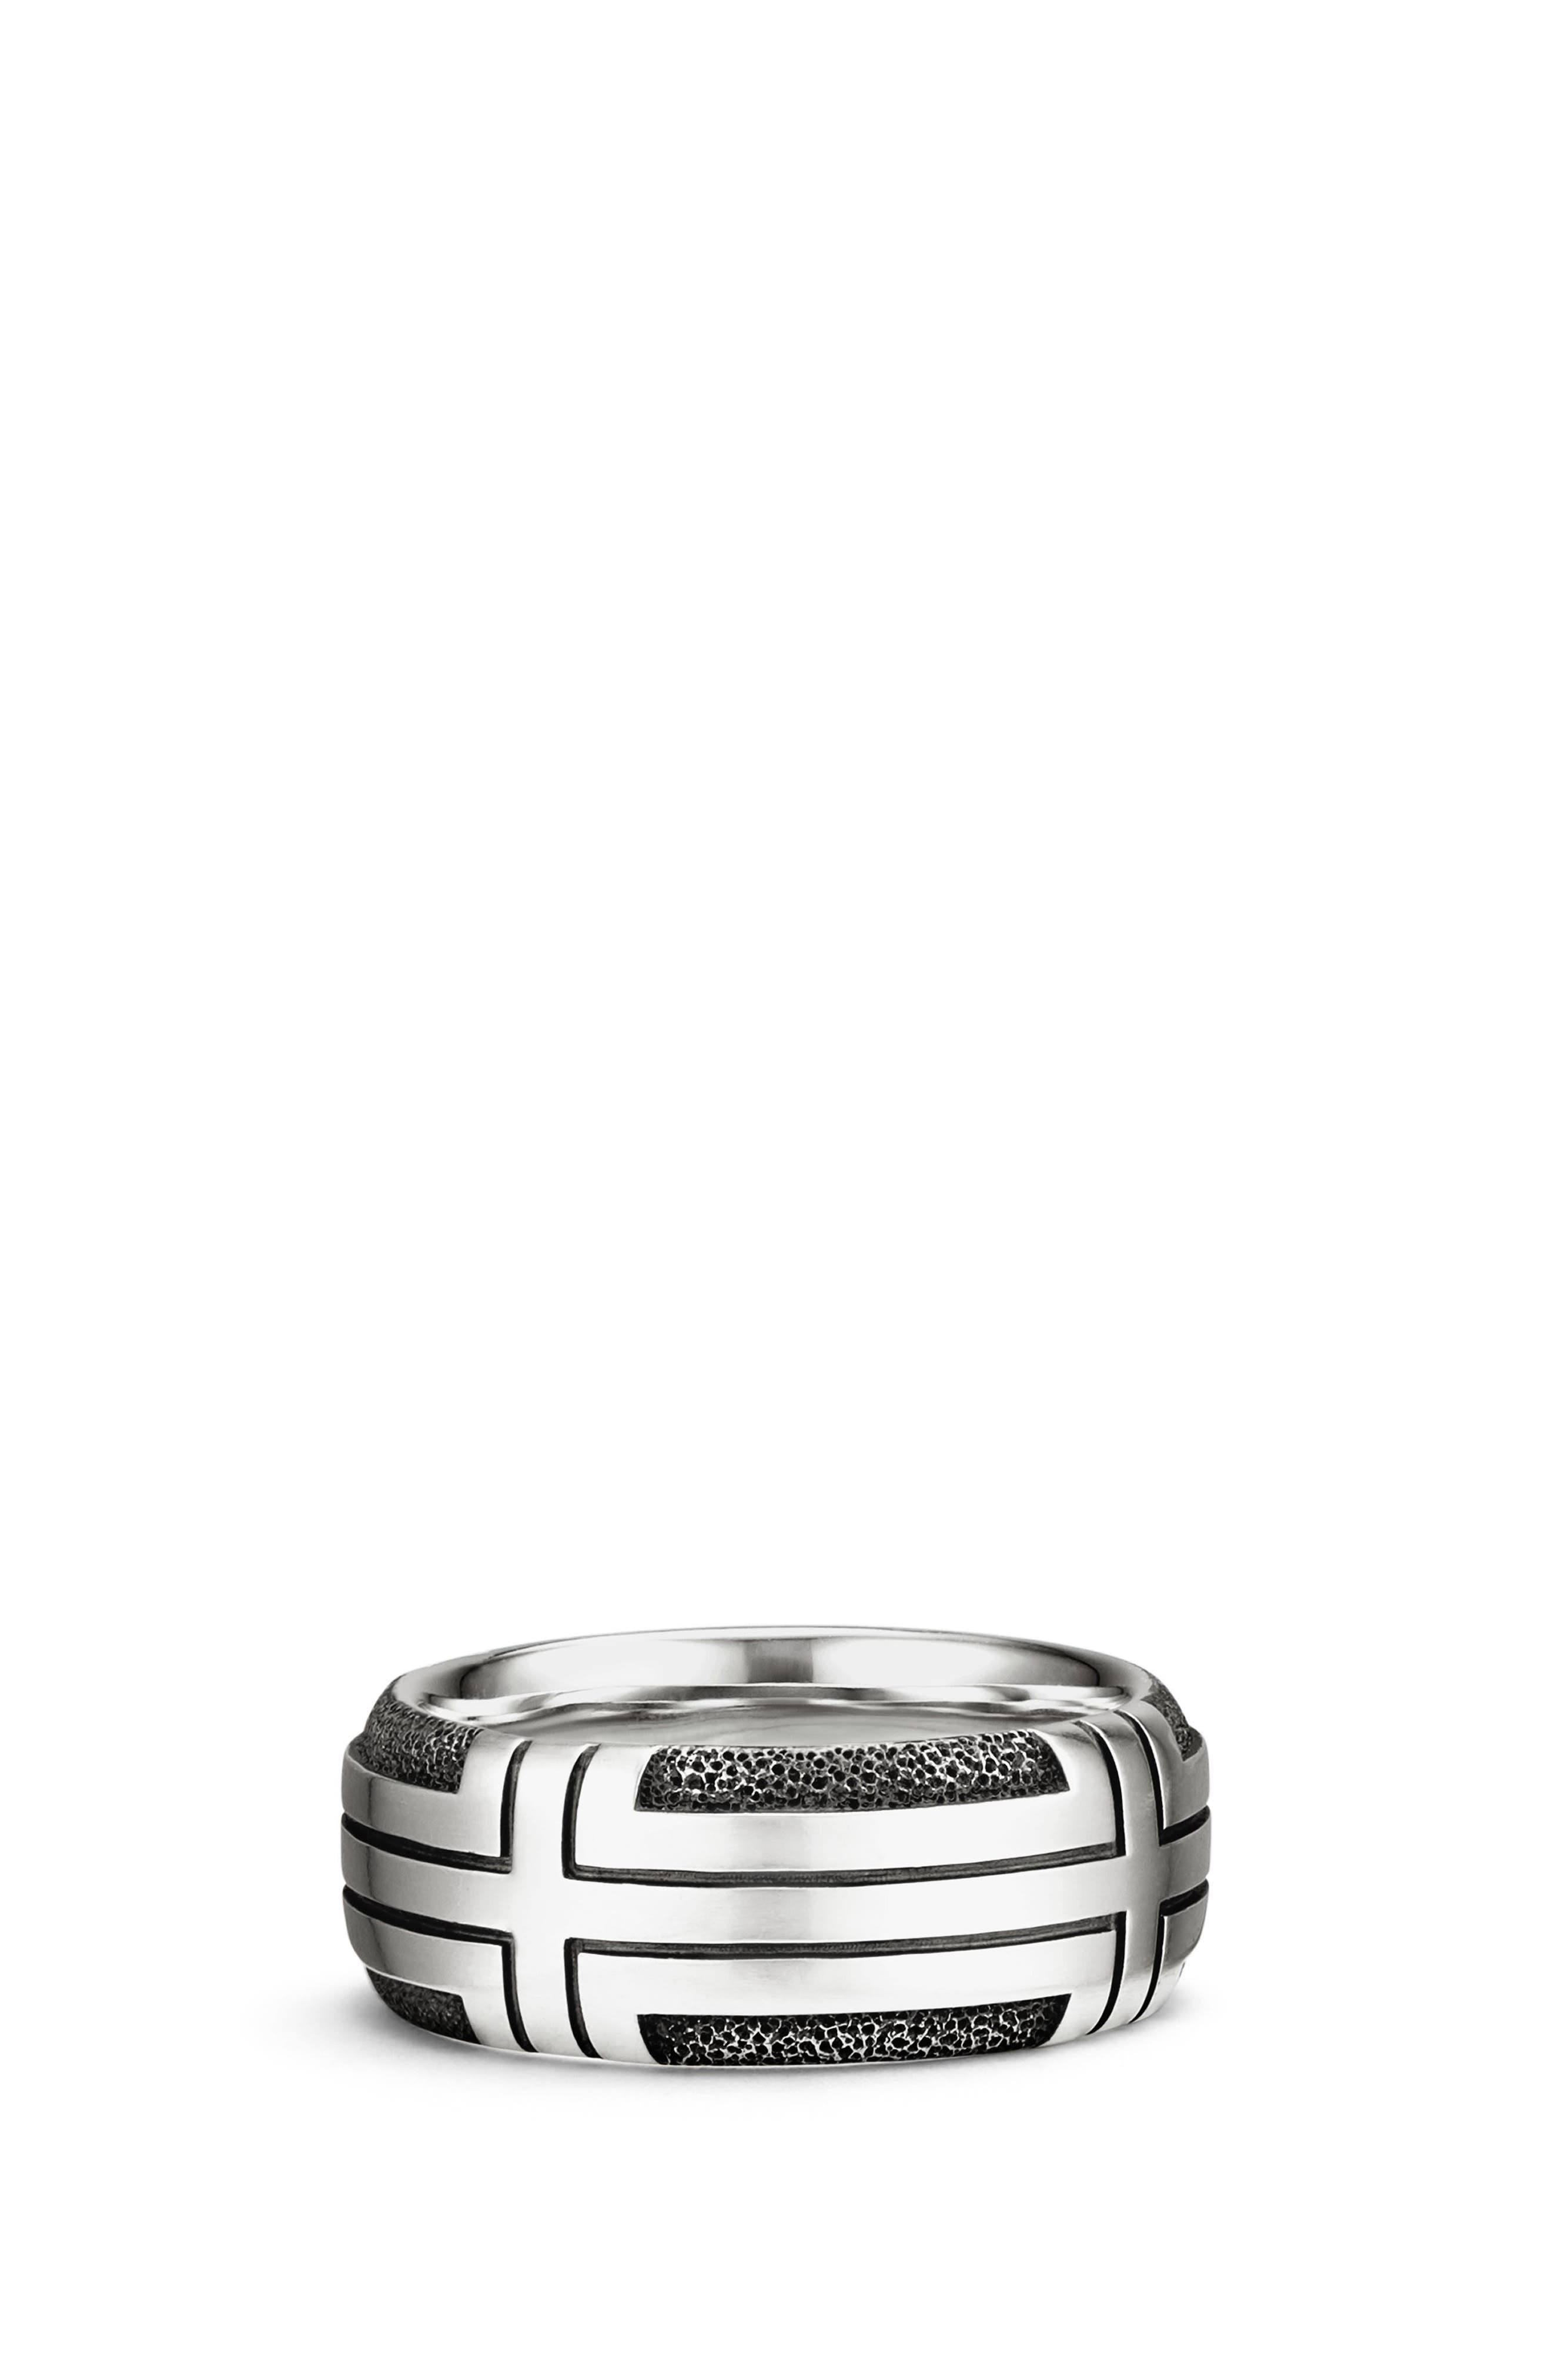 Southwest Band Ring,                         Main,                         color, SILVER